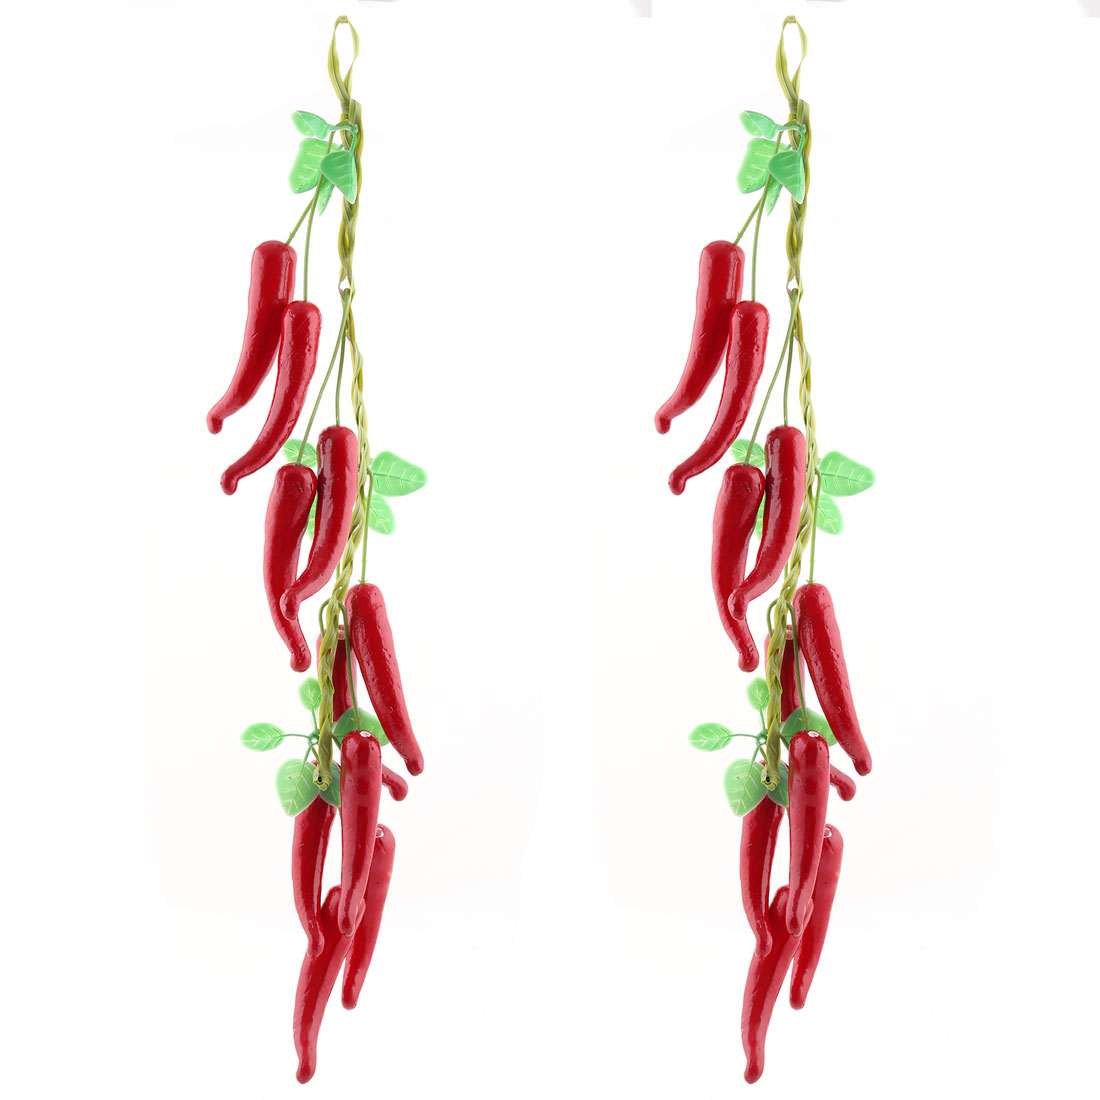 Home Plastic Desk Table Decoration Simulation Artificial Vegetable Chili Red 2 Pcs